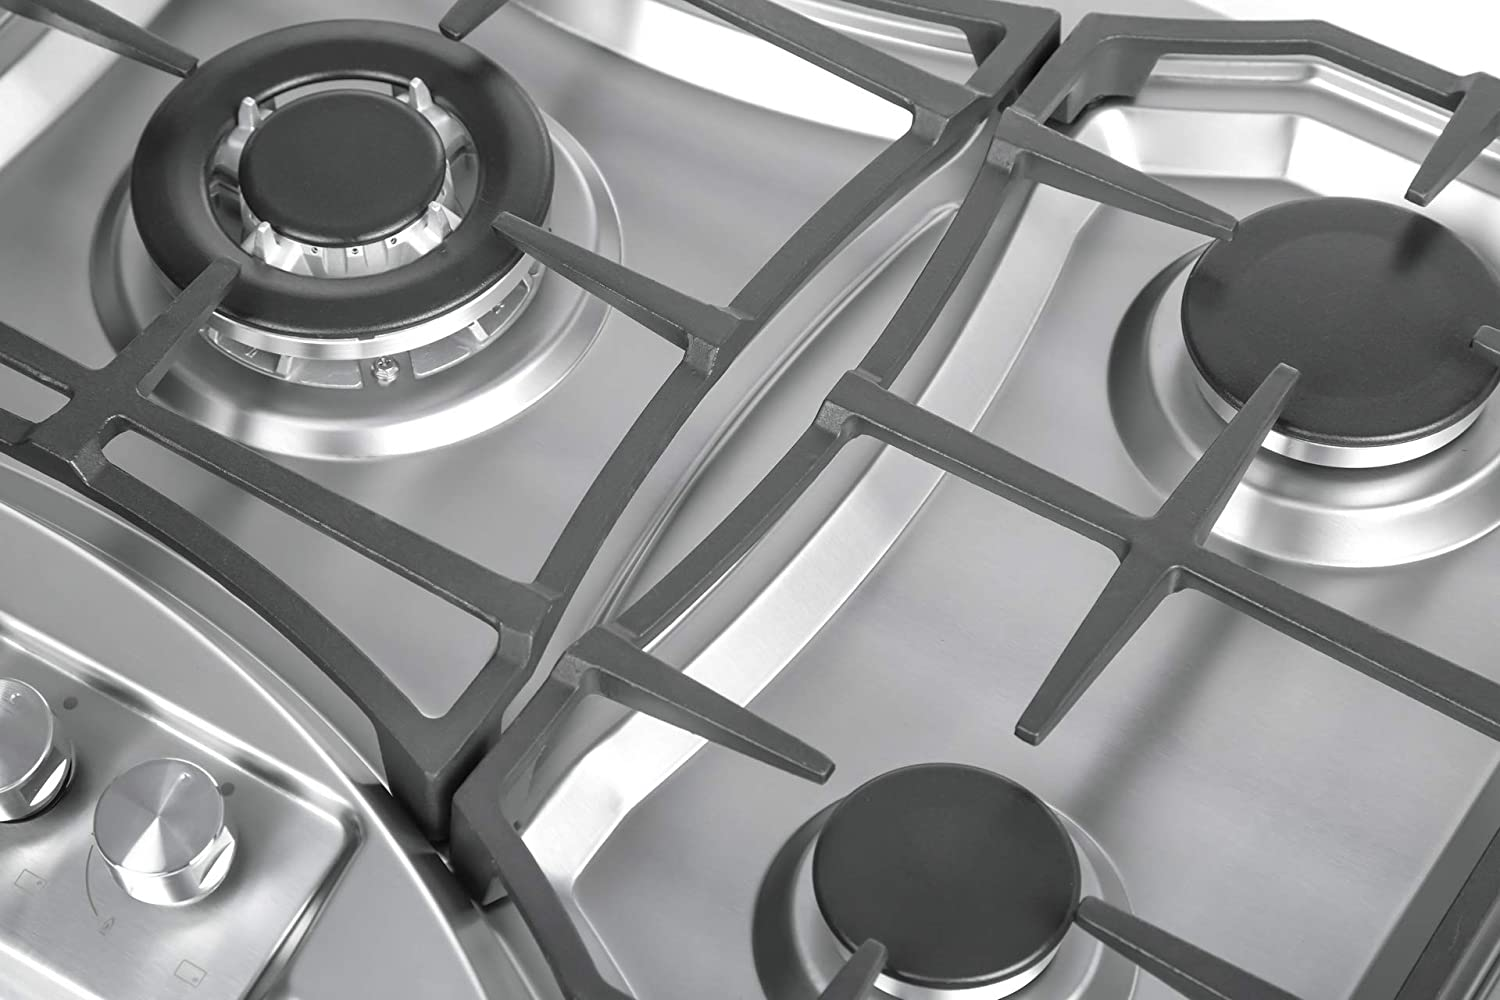 Empava 36 5 Italy Sabaf Burners Gas Stove Tops Gas Cooktop Stainless Steel LPG//NG Convertible EMPV-36GC888